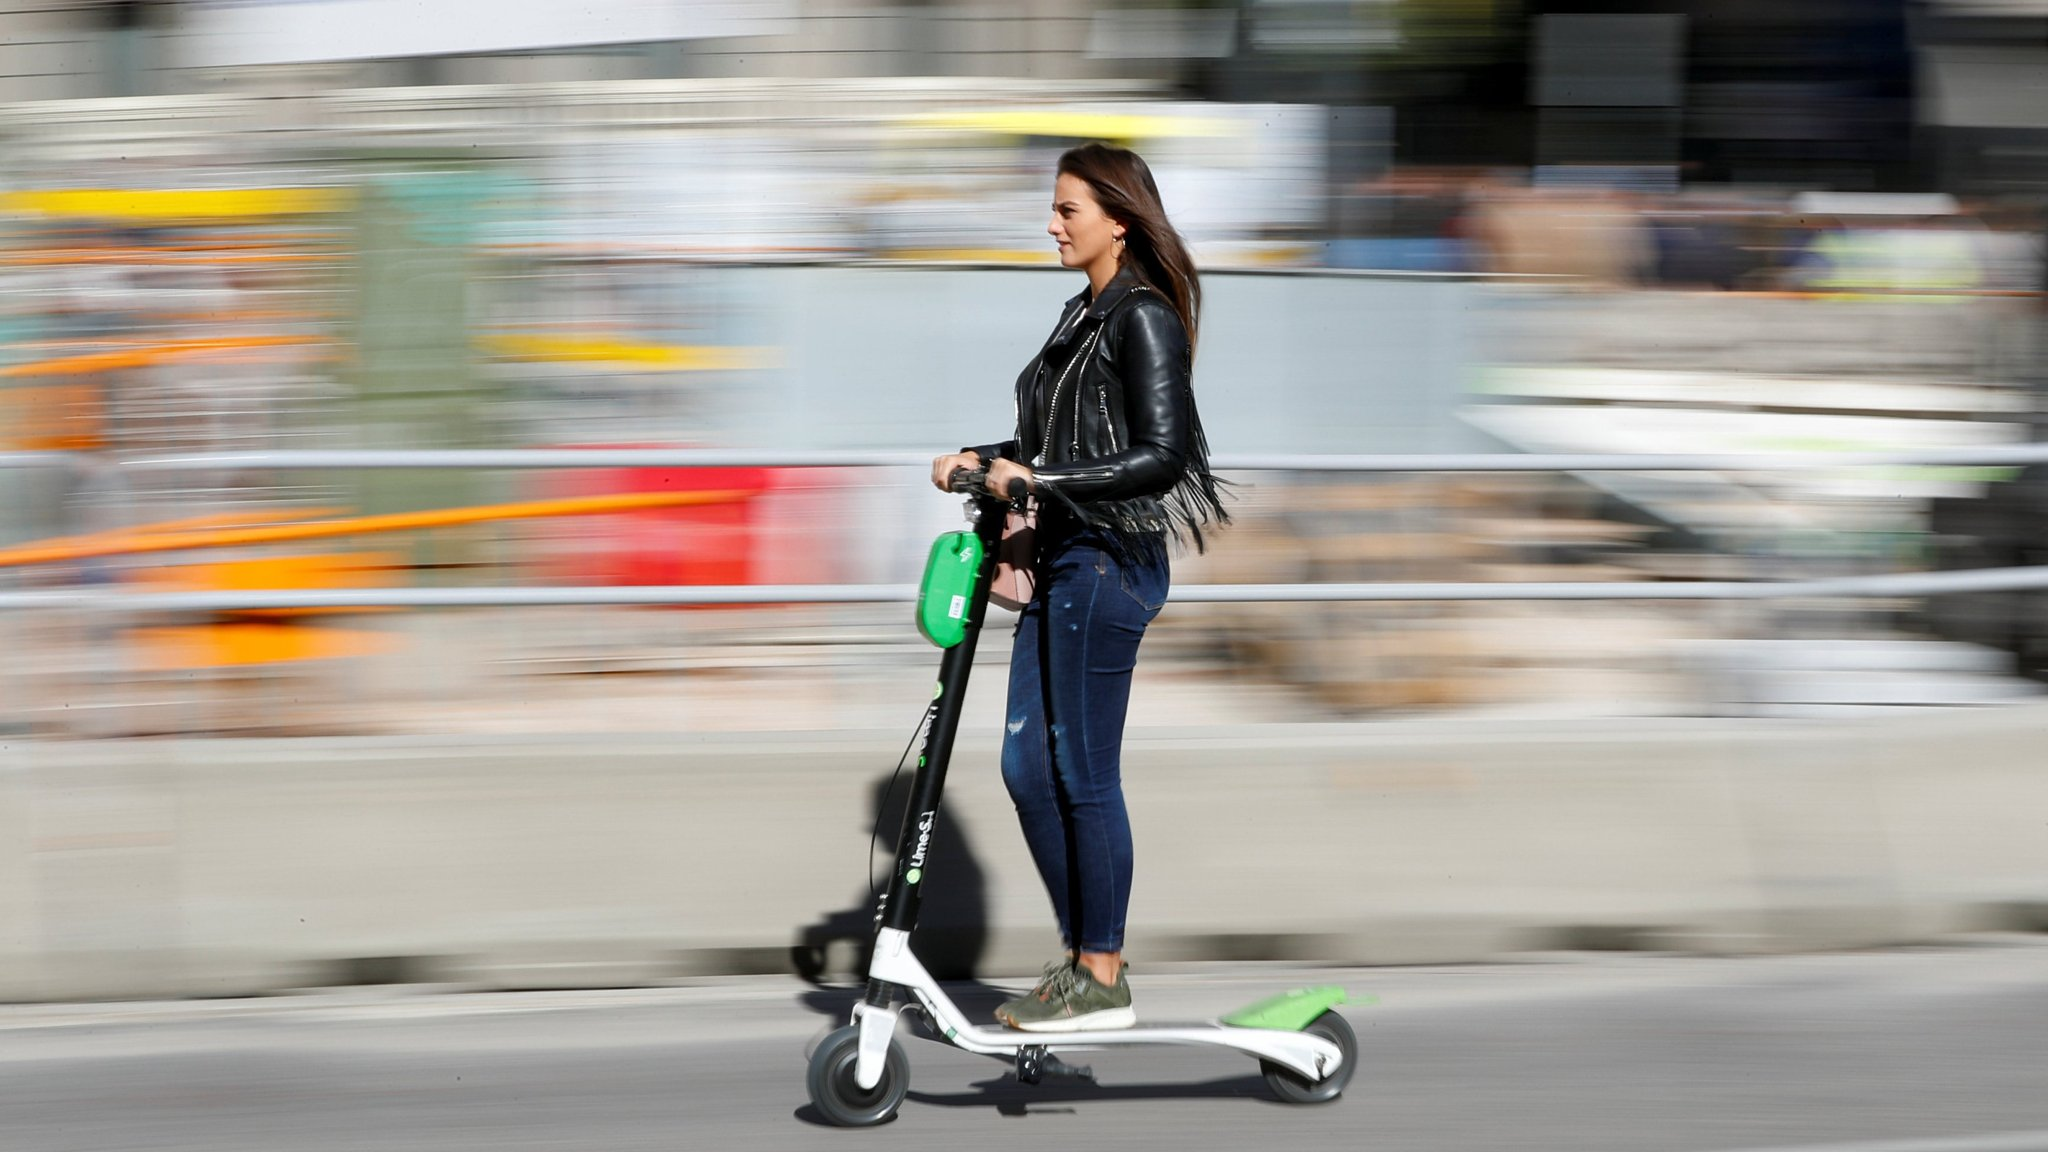 Flash is latest start-up to target crowded Europe scooter